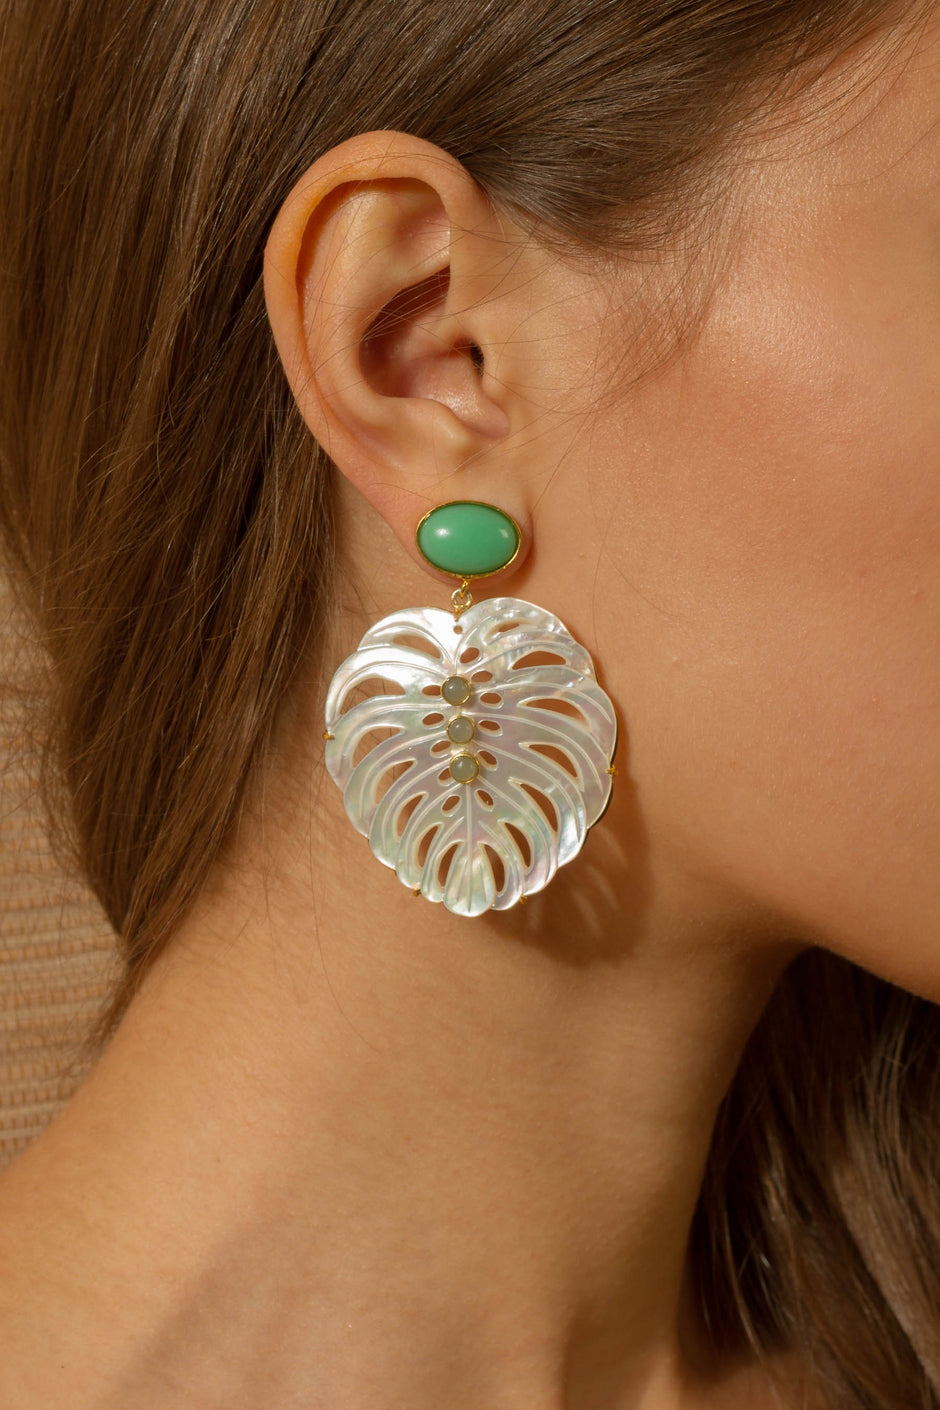 Amazon Earrings in Ocean Green